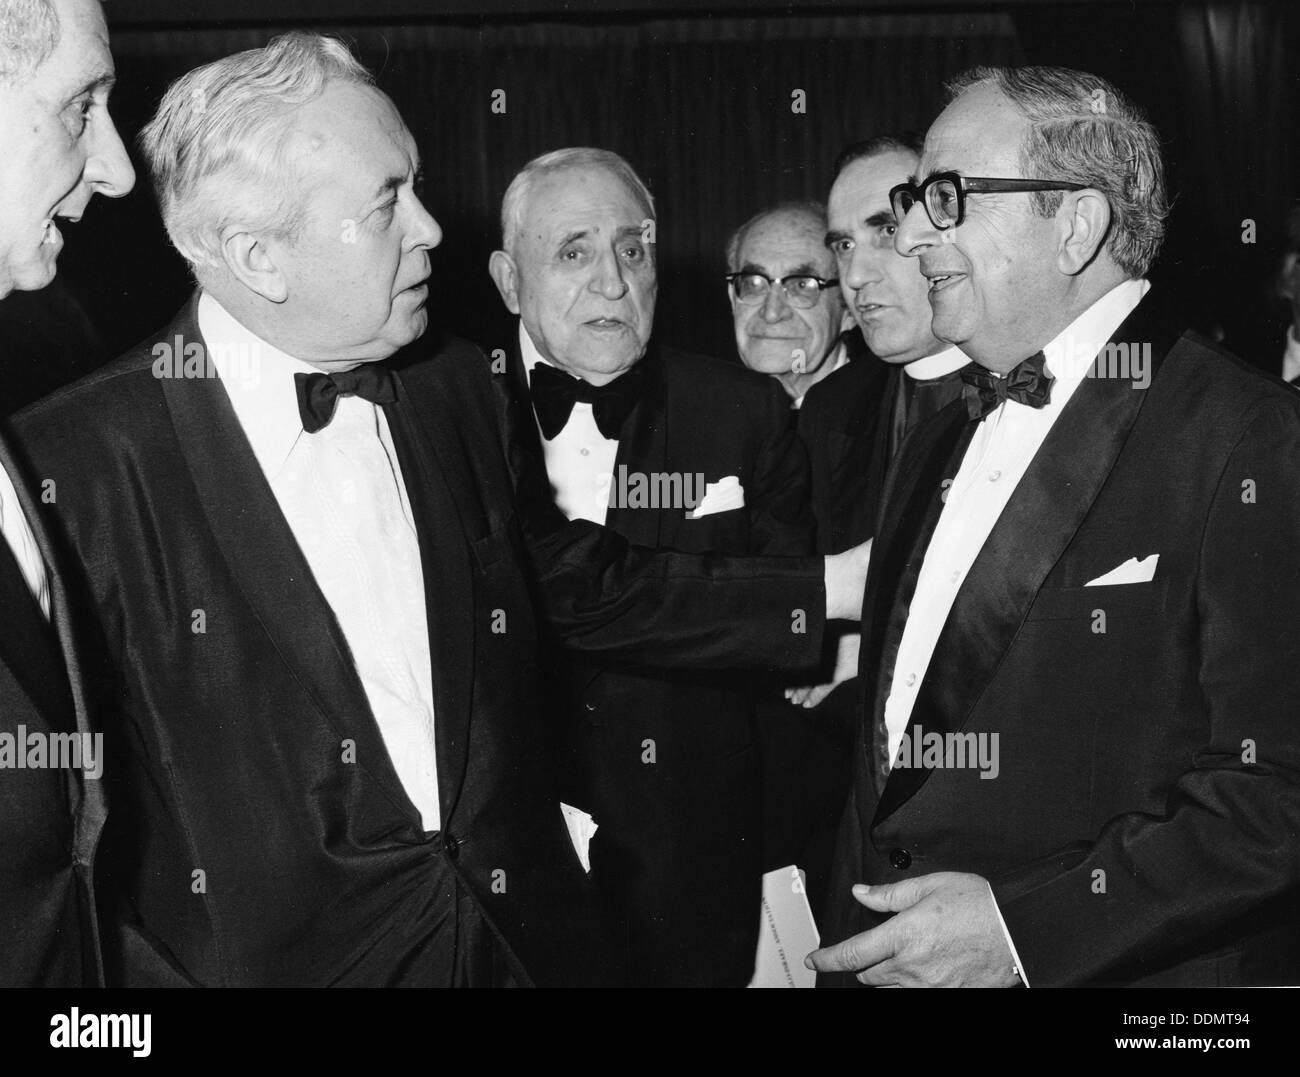 Itzhak Navon (1921- ), President of Israel, with Harold Wilson, Lord Janner and Peter Schnieder. - Stock Image